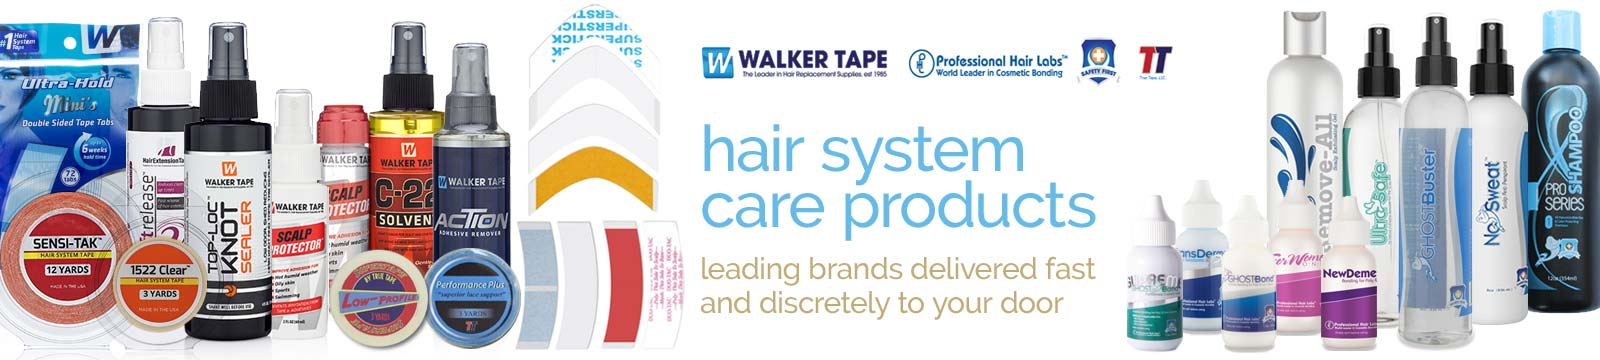 holistique - wig & hair system care products banner